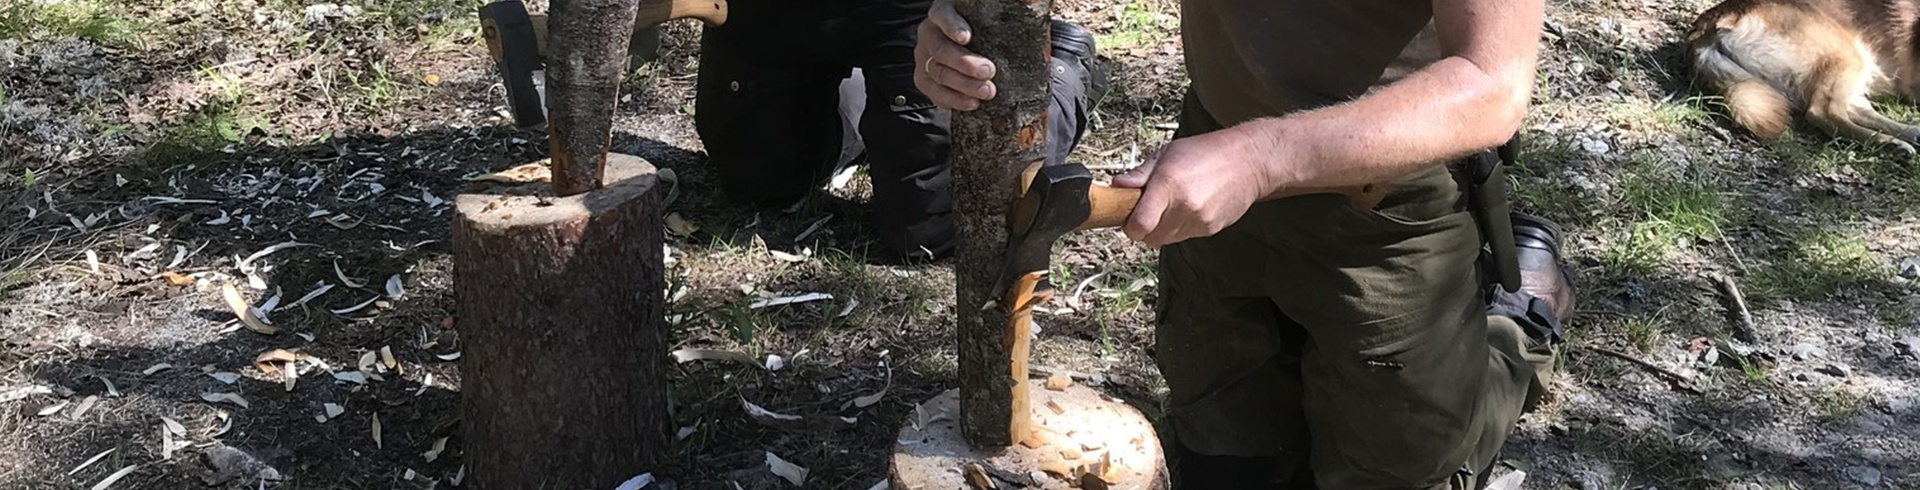 Bushcraft Basics - Learn the most important wilderness skills